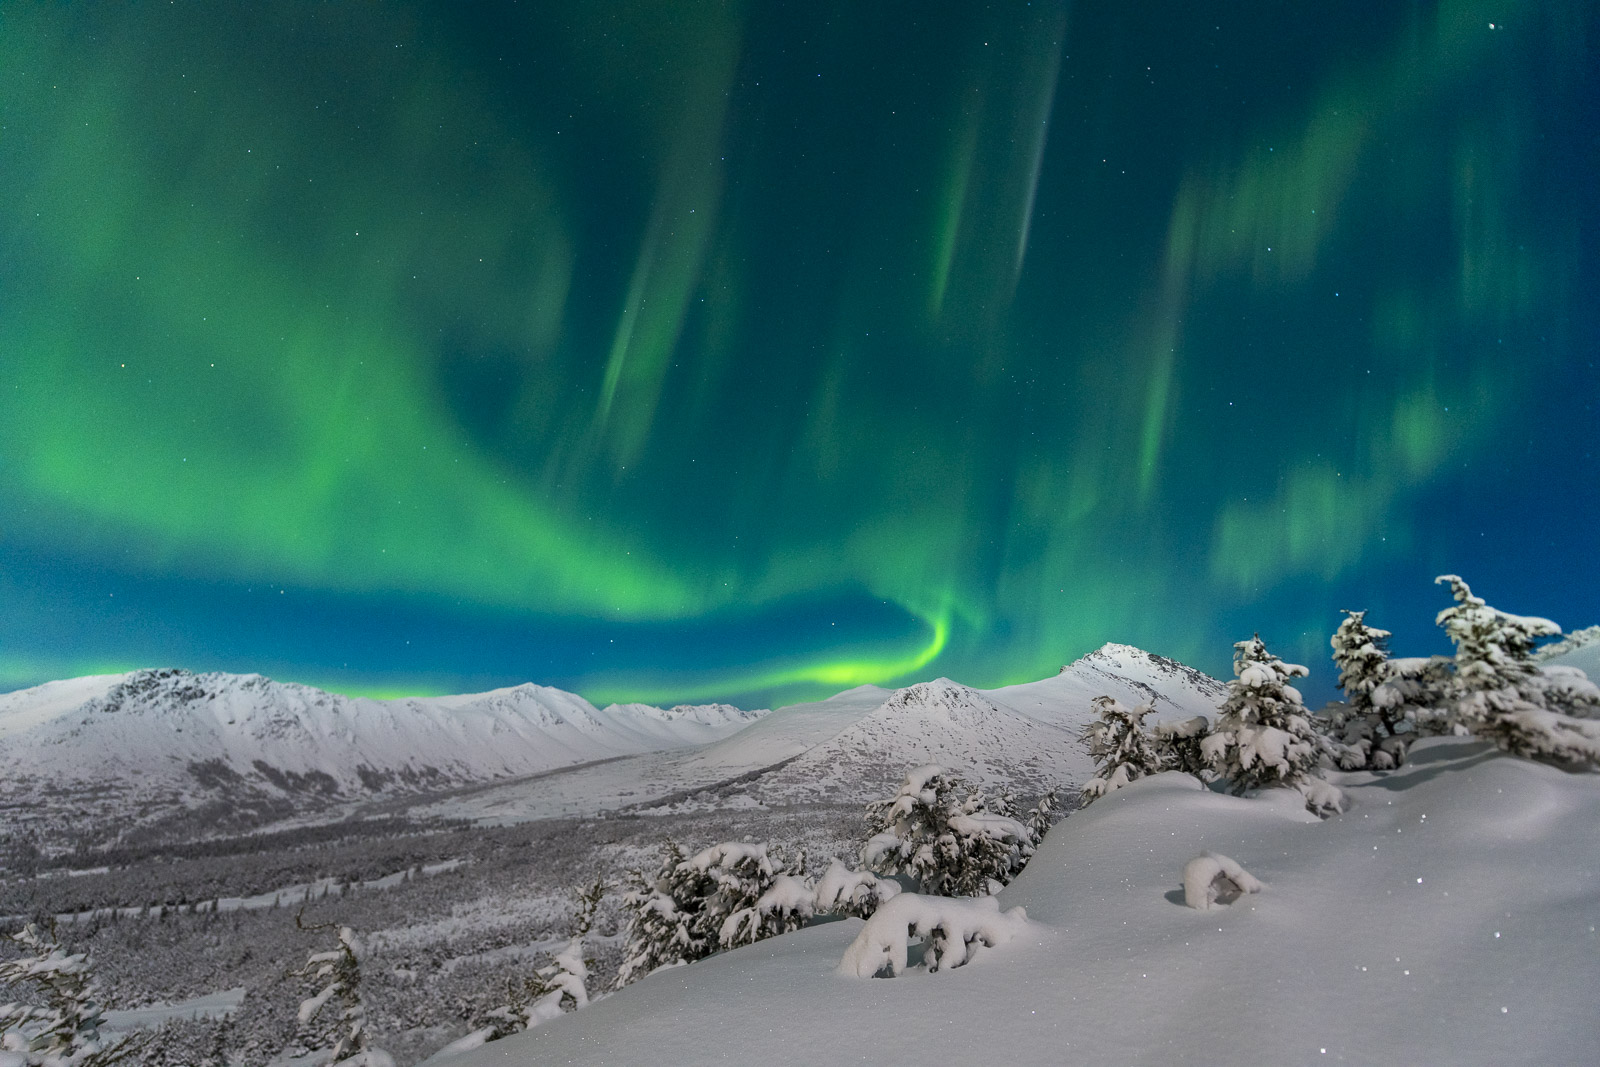 The aurora borealis dances over the front range of the Chugach Mountains on a bright moonlit night.